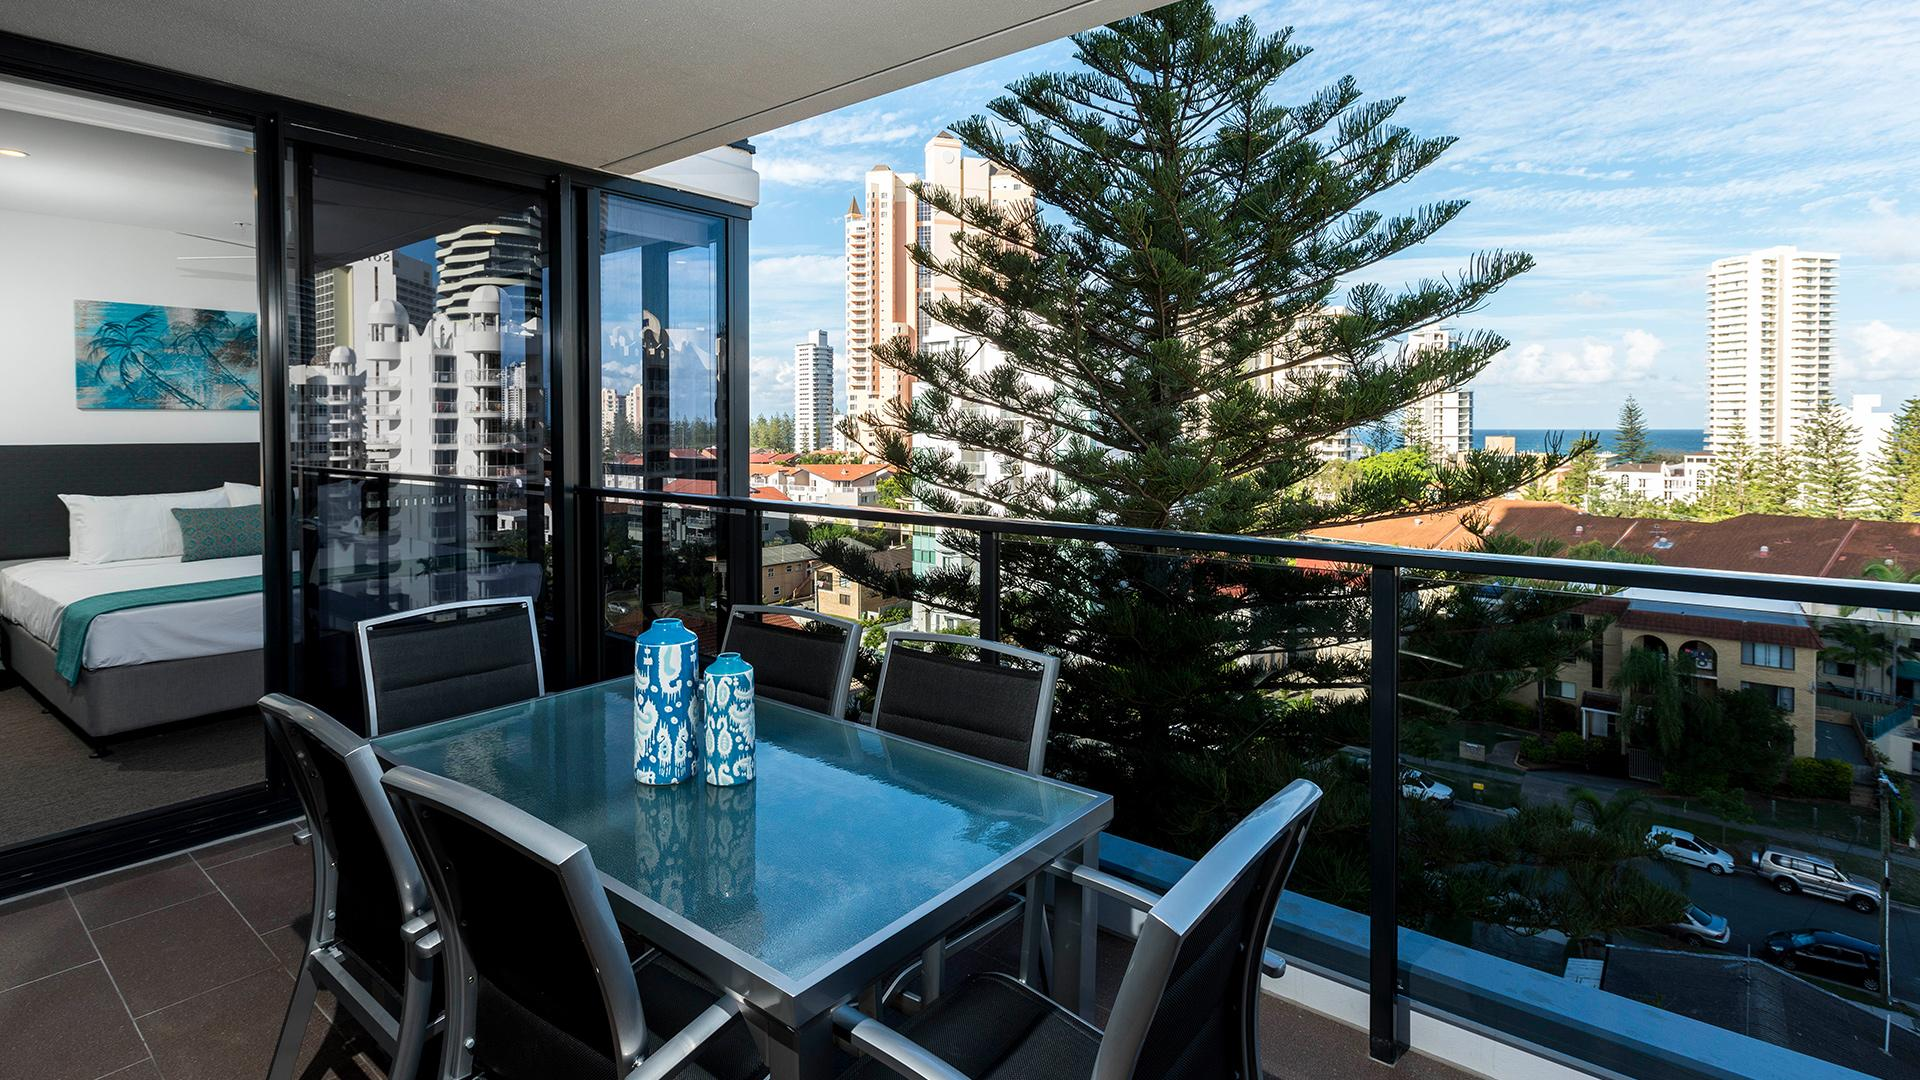 Two-Bedroom Apartment image 1 at Synergy Broadbeach by City of Gold Coast, Queensland, Australia